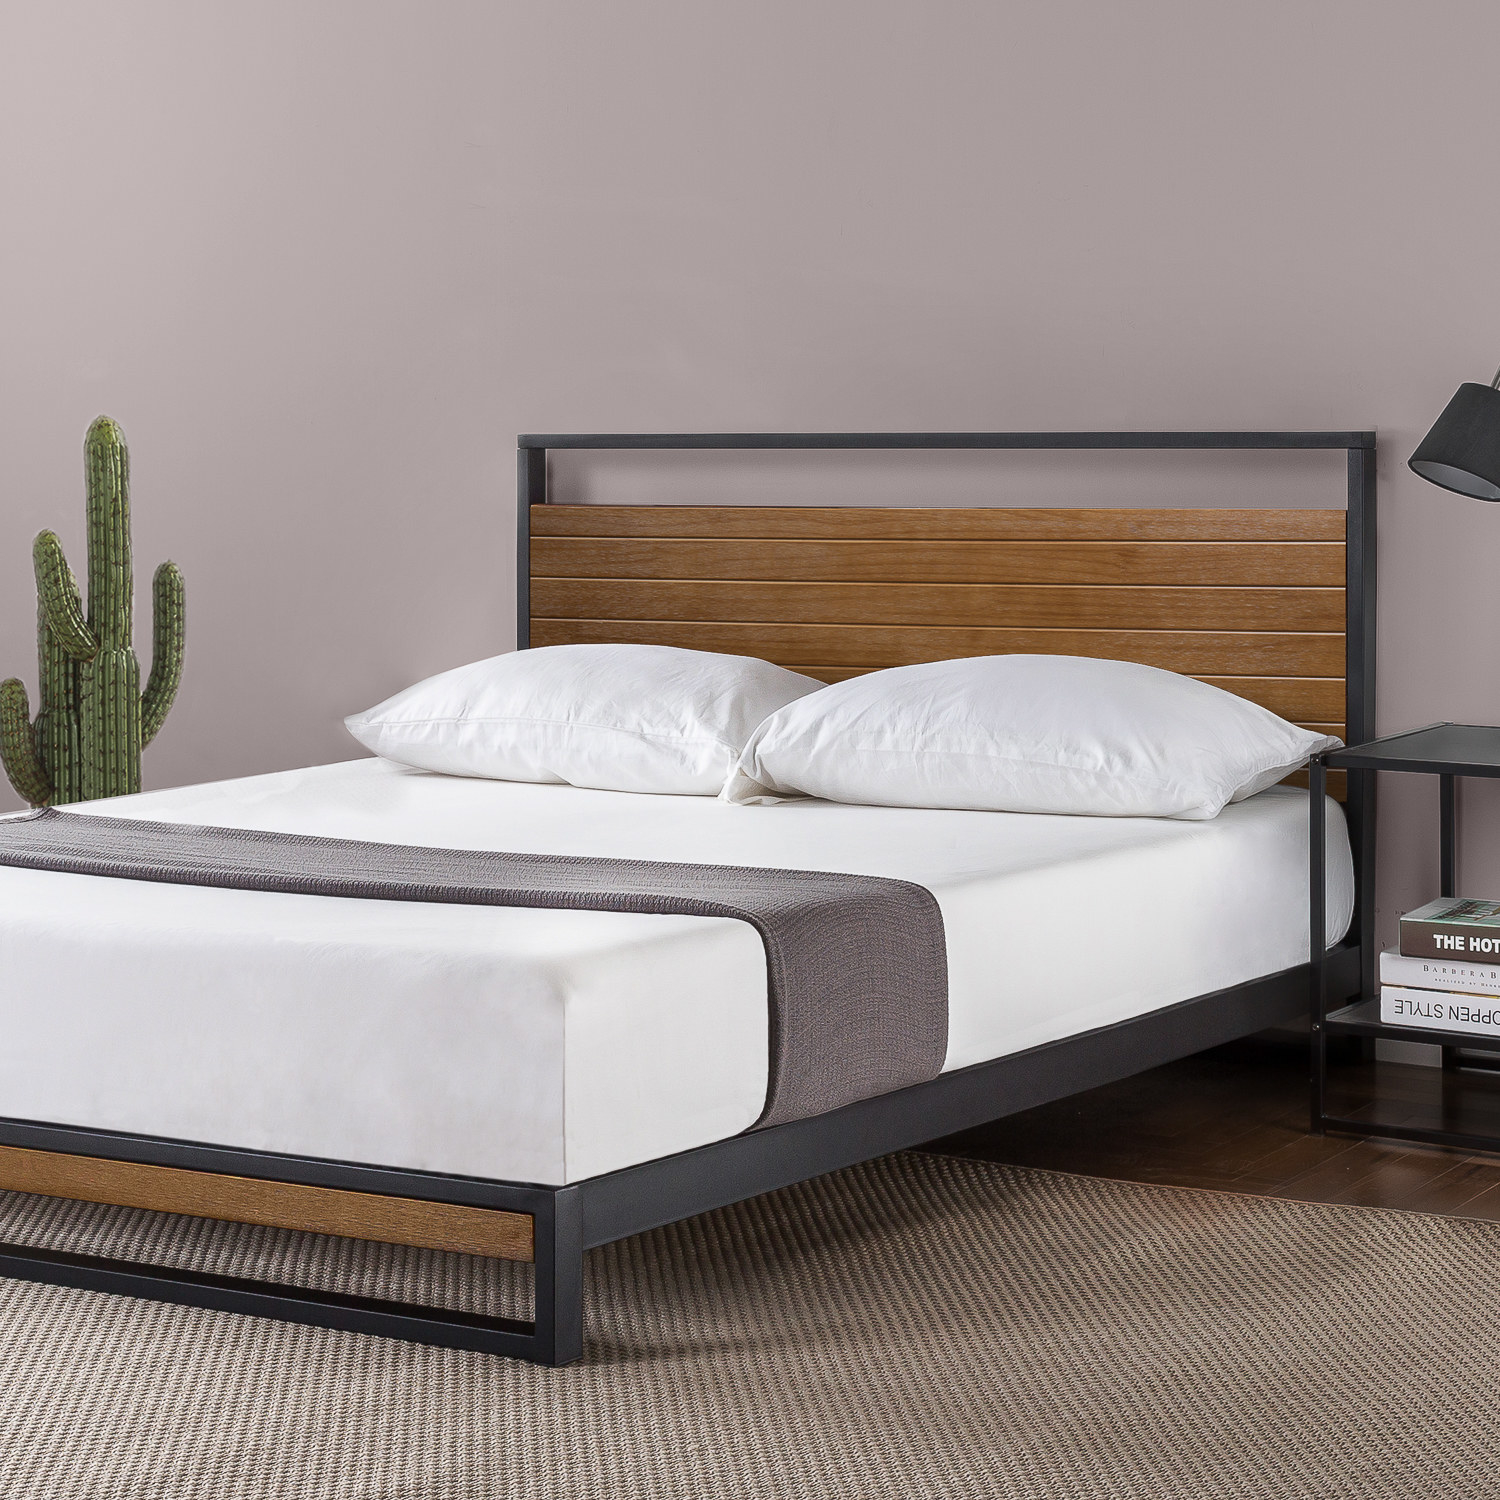 a bedframe with metal frame and wooden headboard